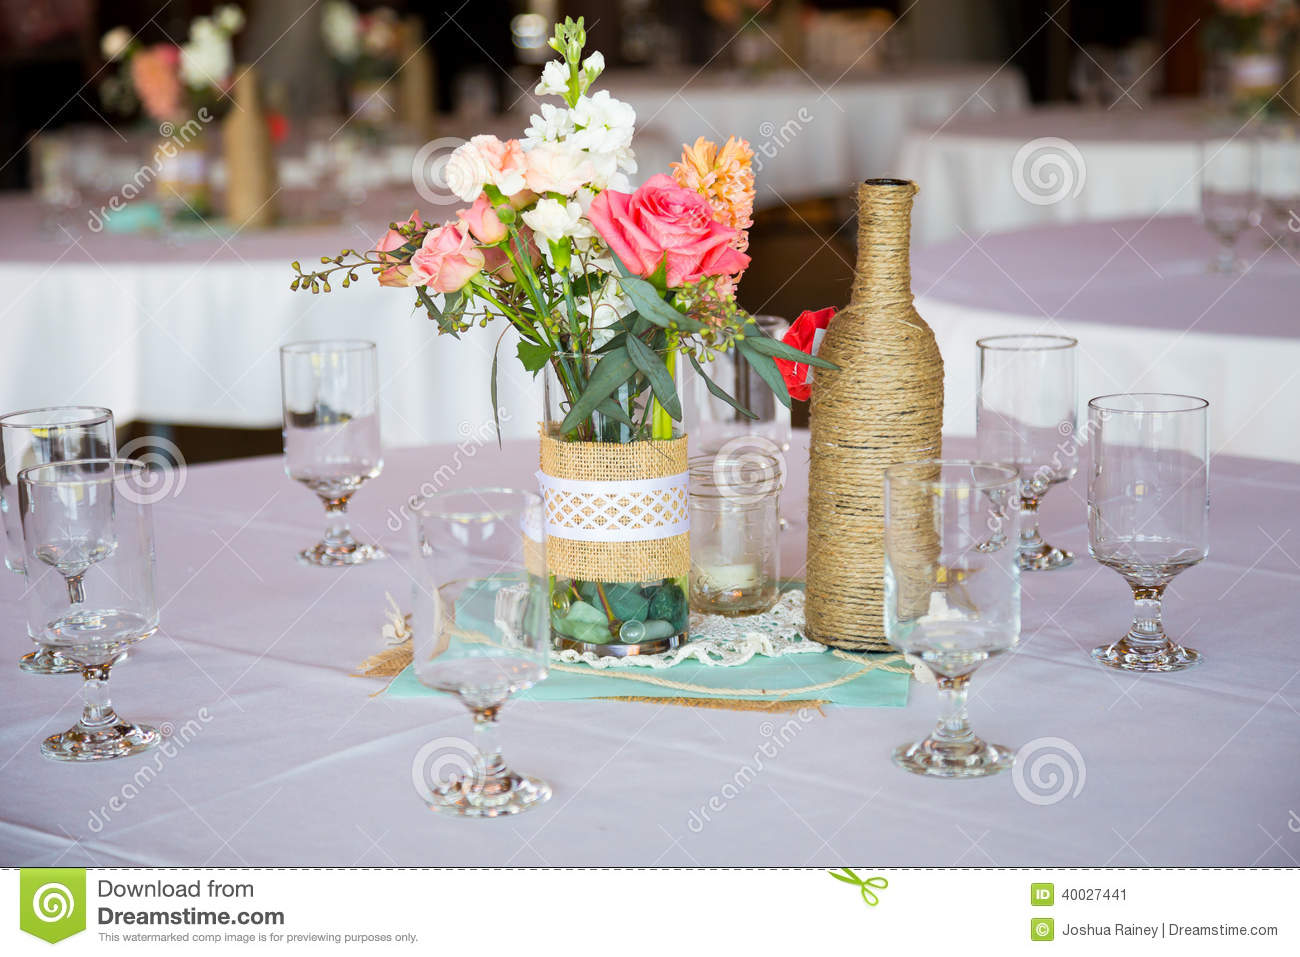 Wedding Reception Table Centerpieces Stock Image - Image of rose, style:  40027441